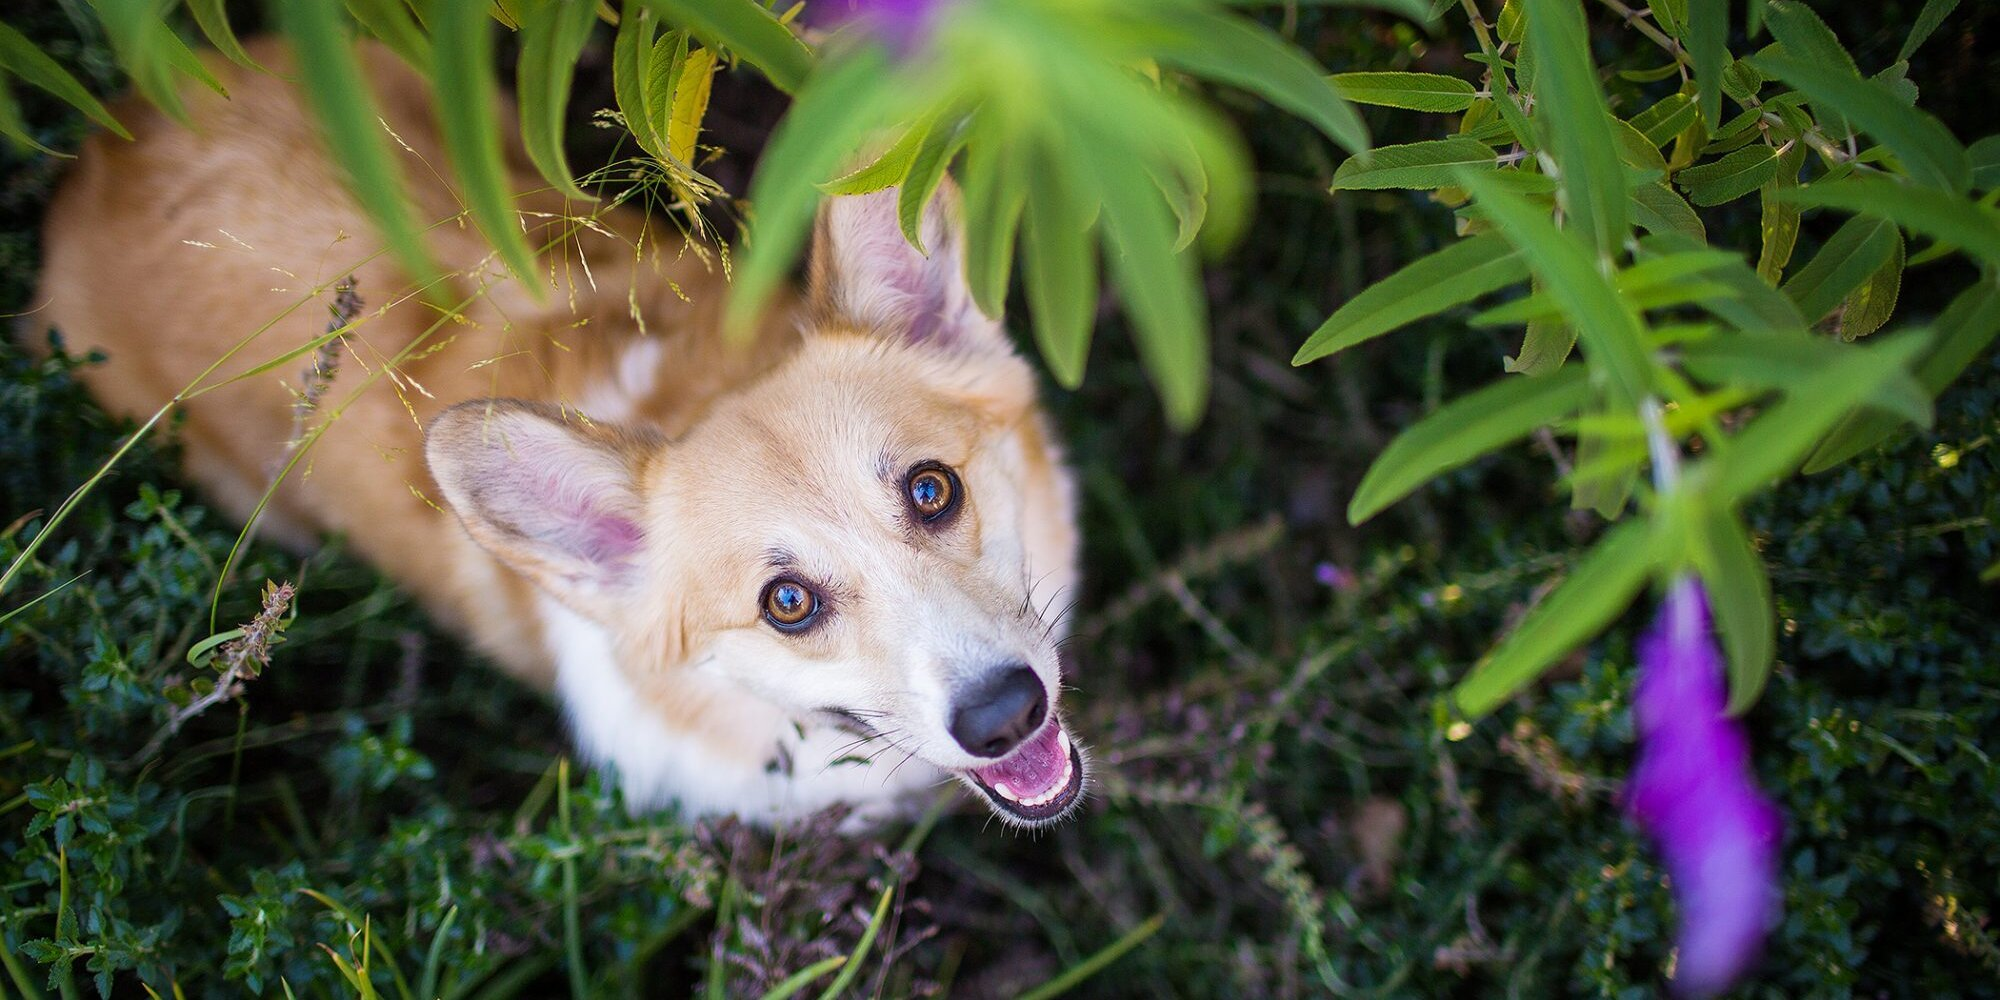 Do You Know the Toxins That Are Poisonous To Your Pet?